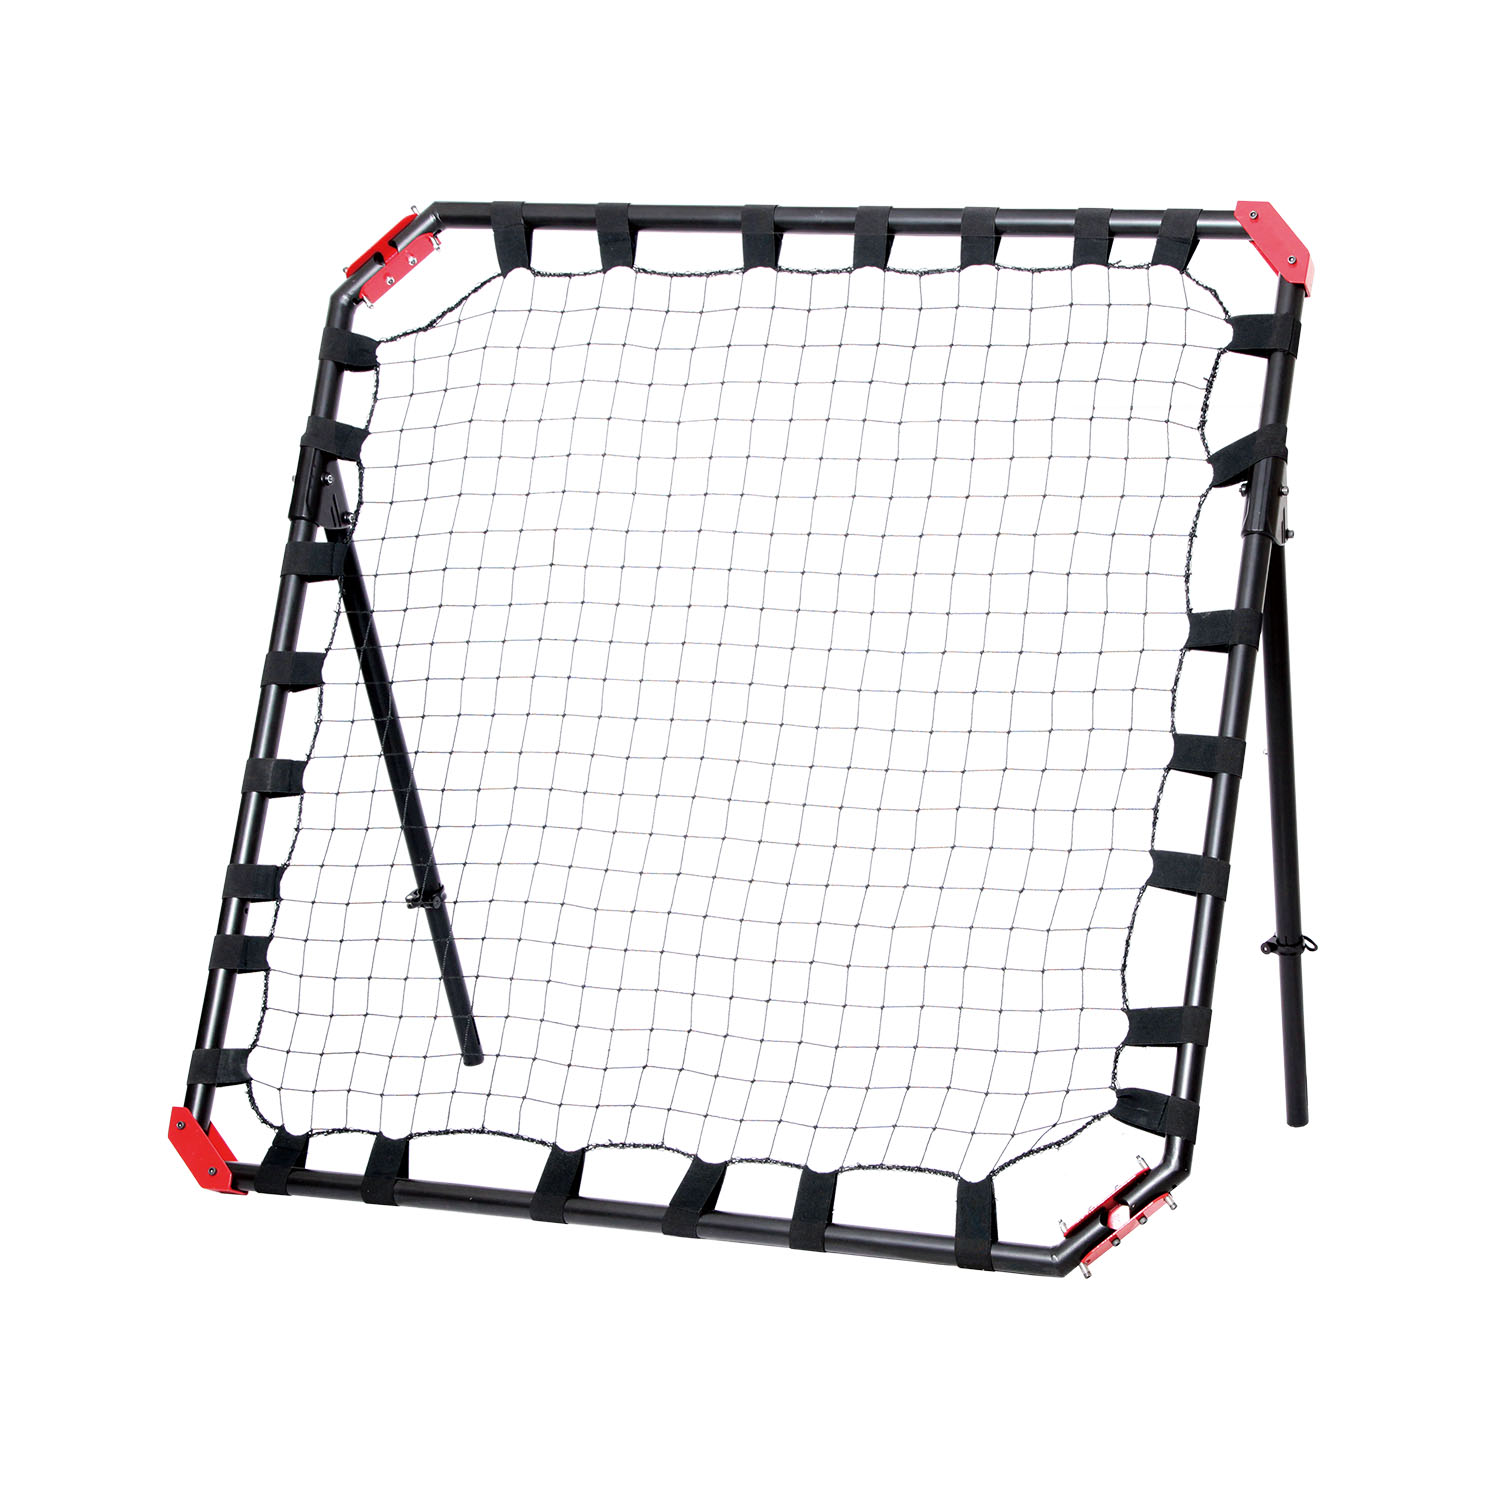 NET PLAYZ Portable Soccer Rebound Net, 4 Ft x 4 Ft Rebounder, Easy Set Up, Sturdy Metal Tube, With Quick Folding Design, No Assembly Needed! Multi Angle Adjustment, Carry Bag Included